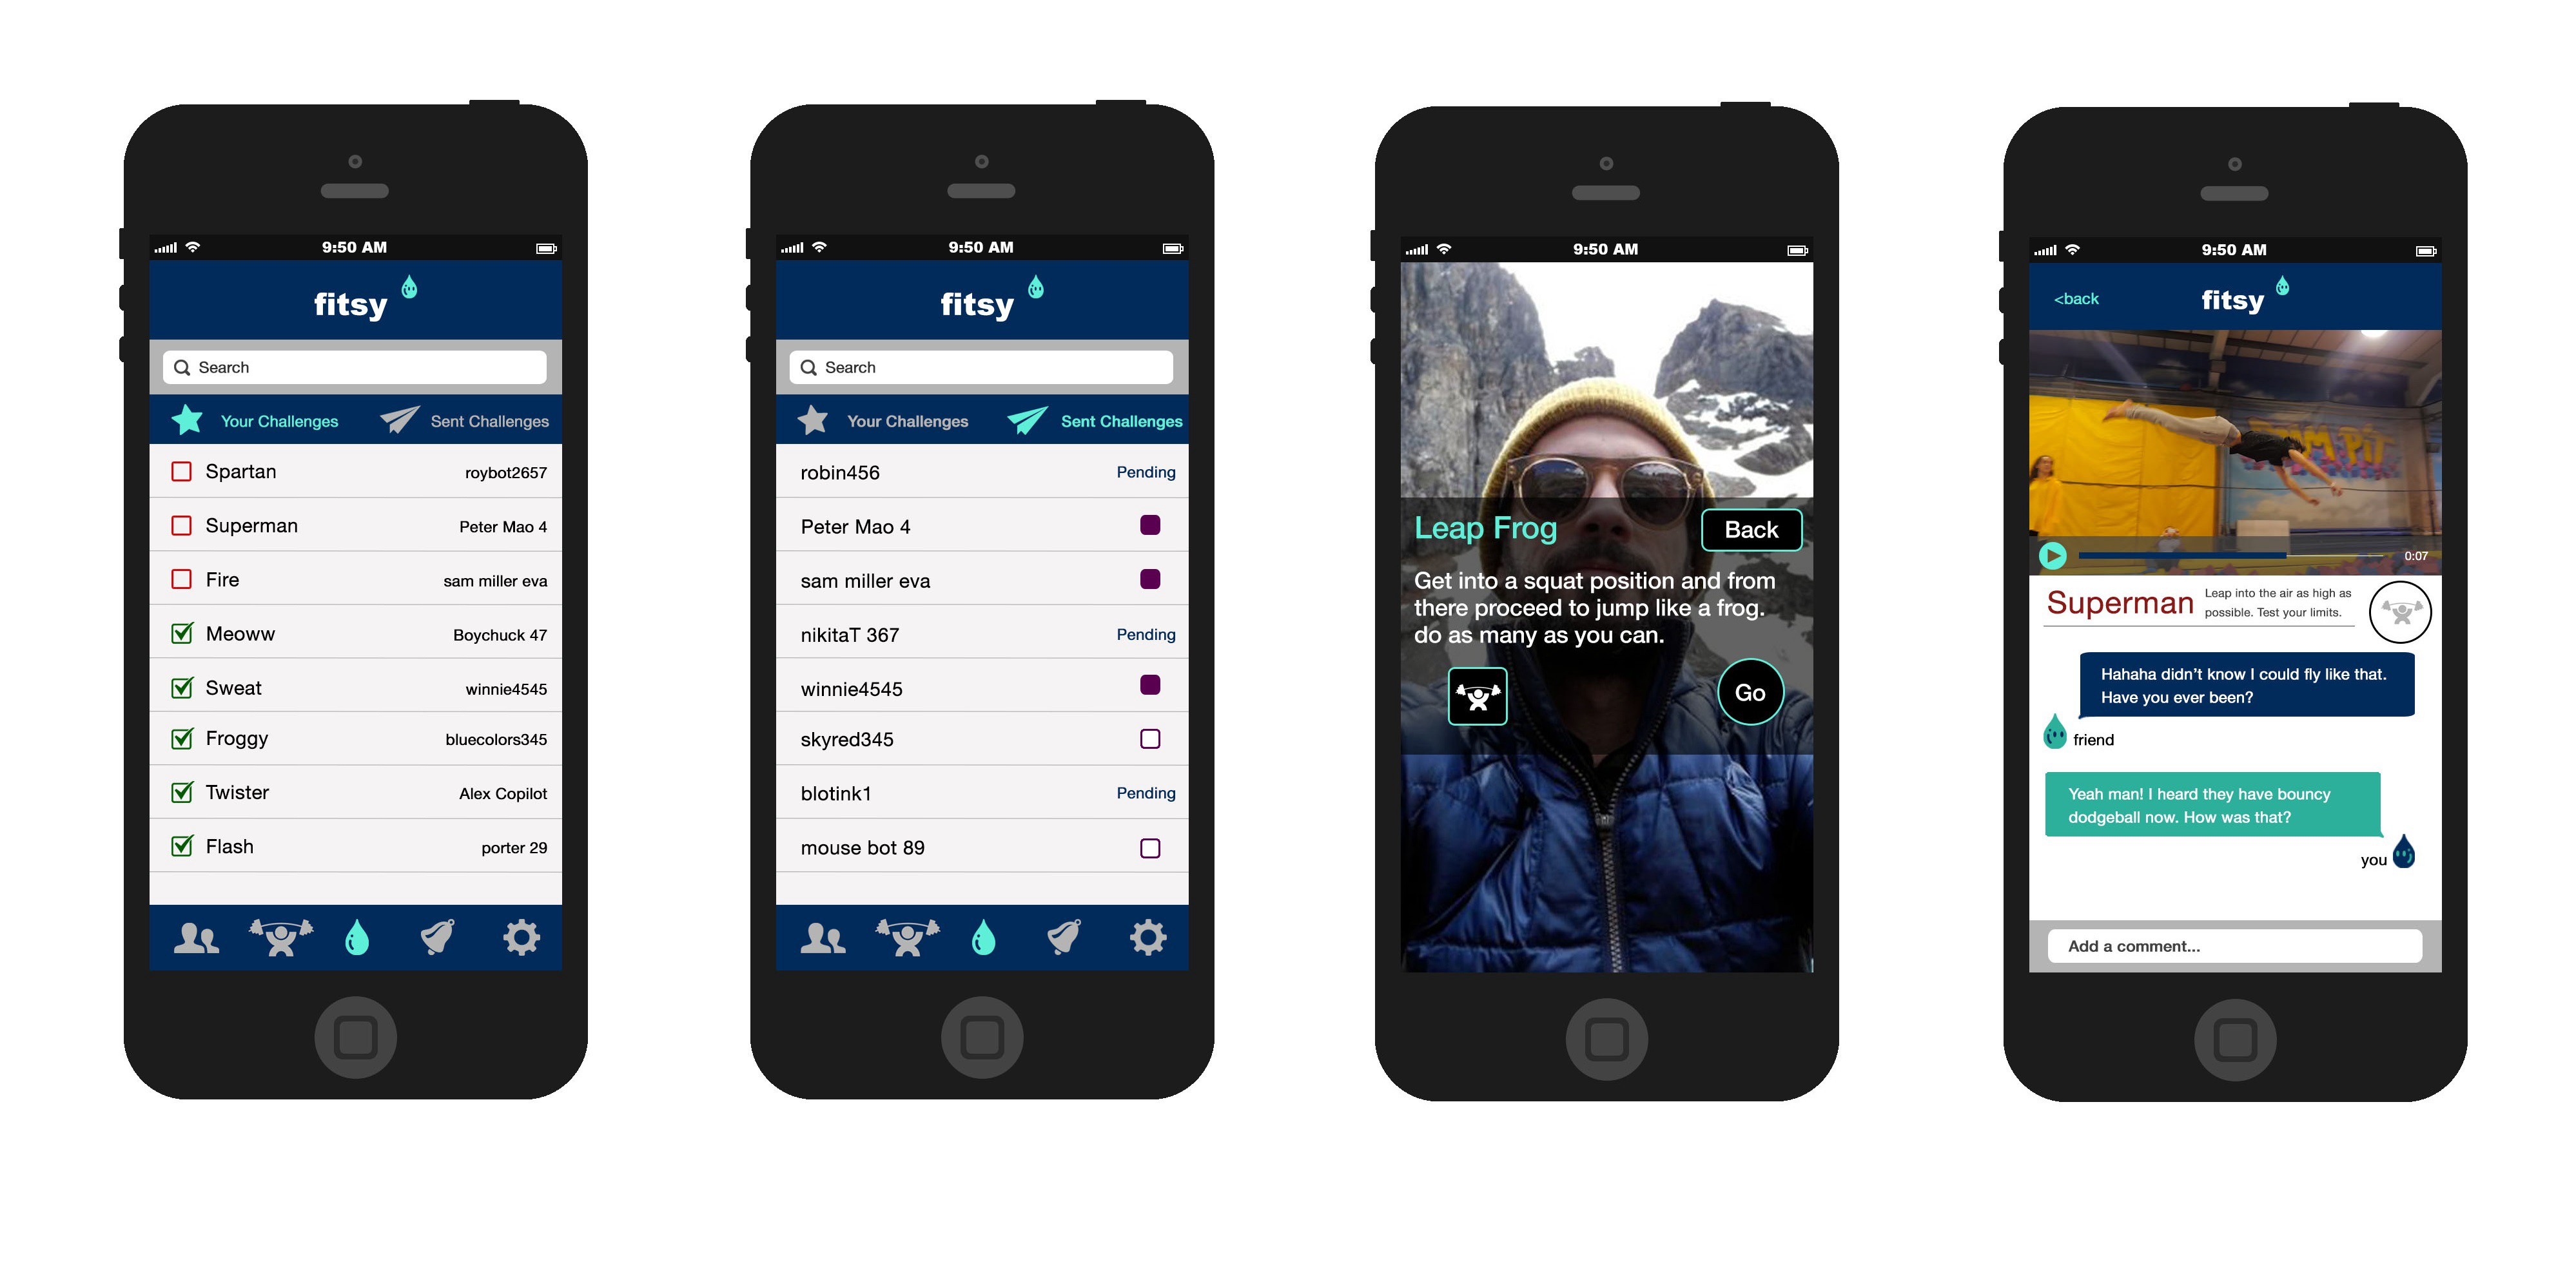 Pairing Fitness And Social Media Into One Mobile App The